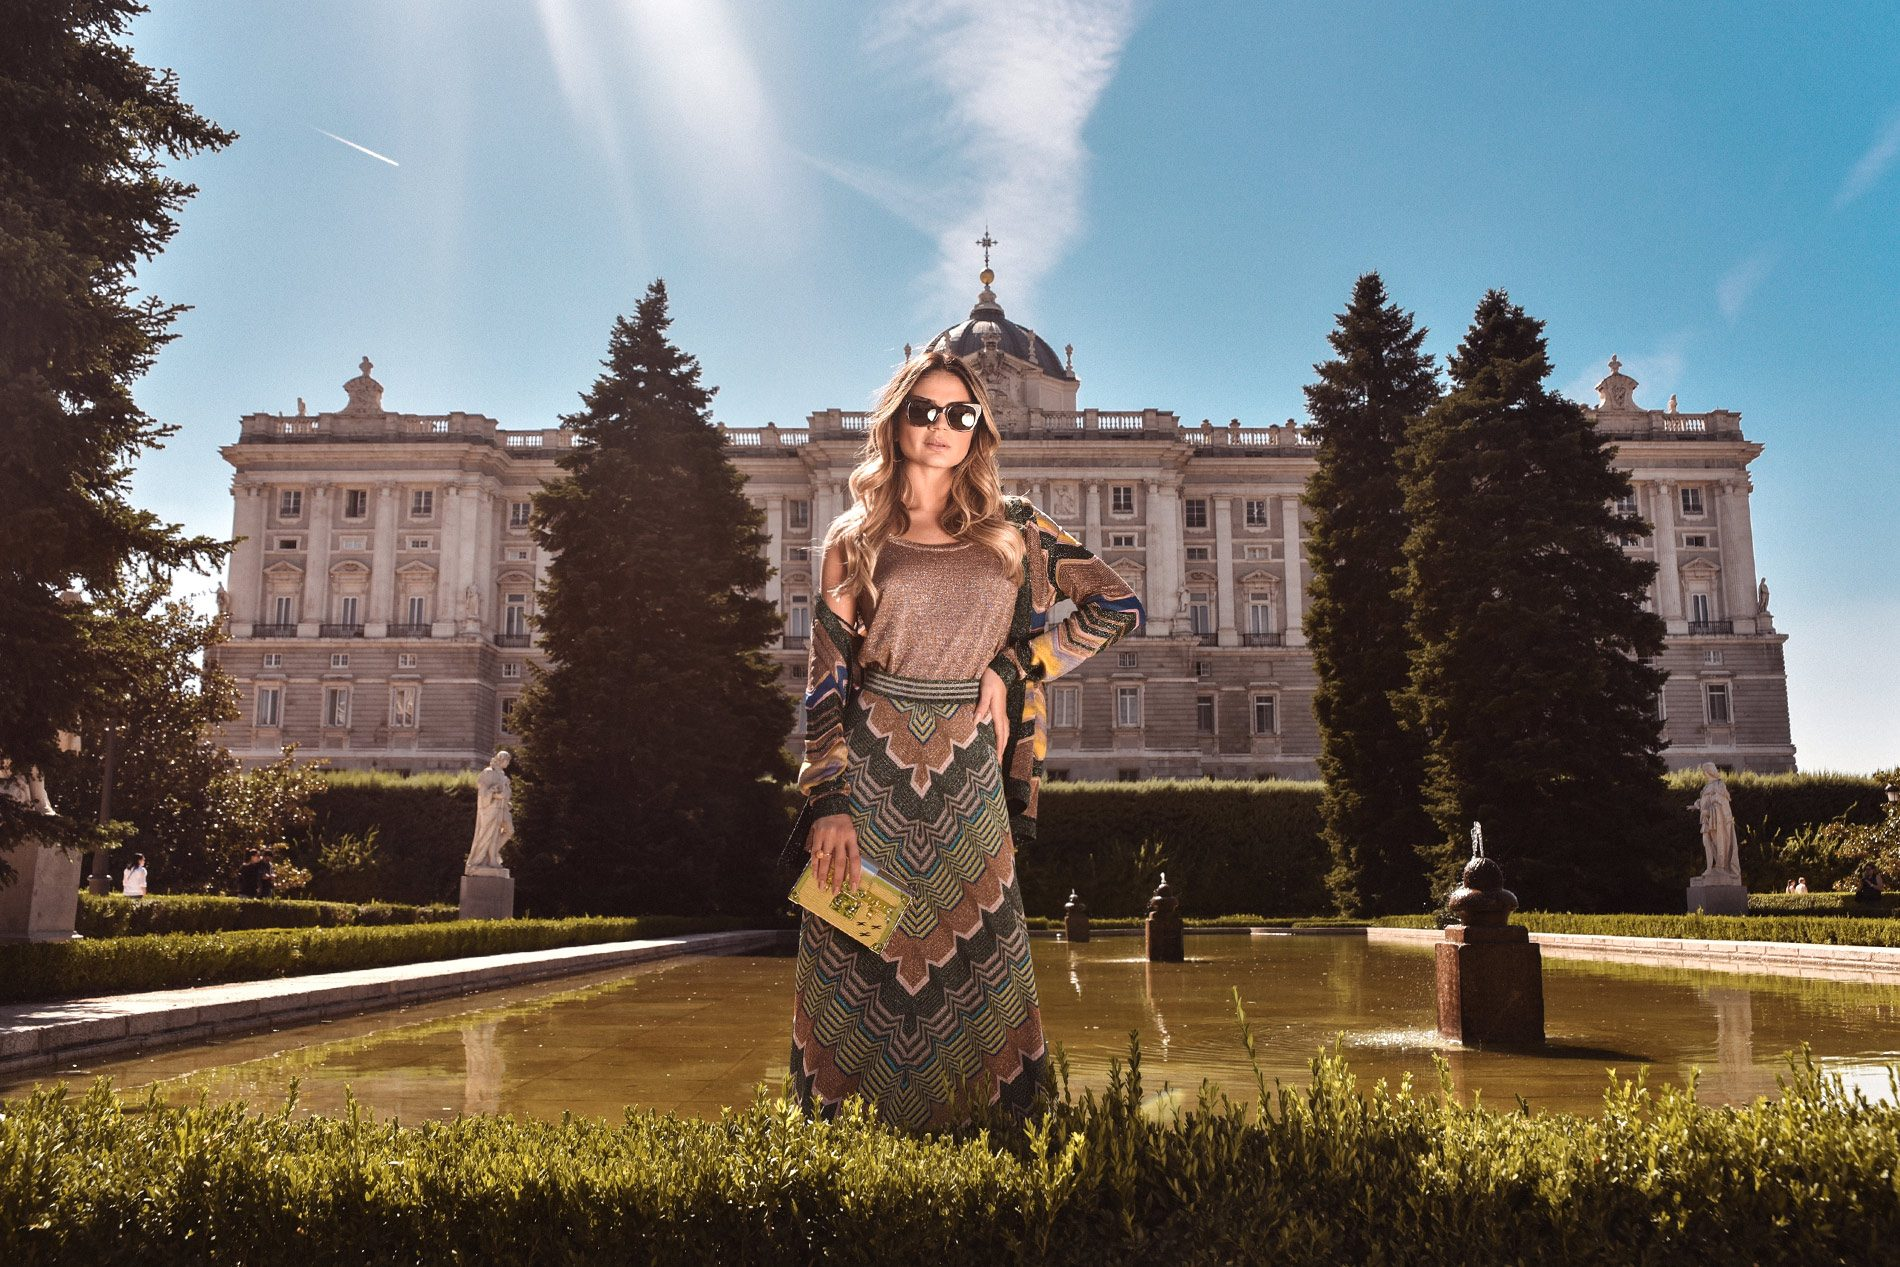 El Corte Inglés Madrid Spain Thassia Naves Missoni Louis Vuitton